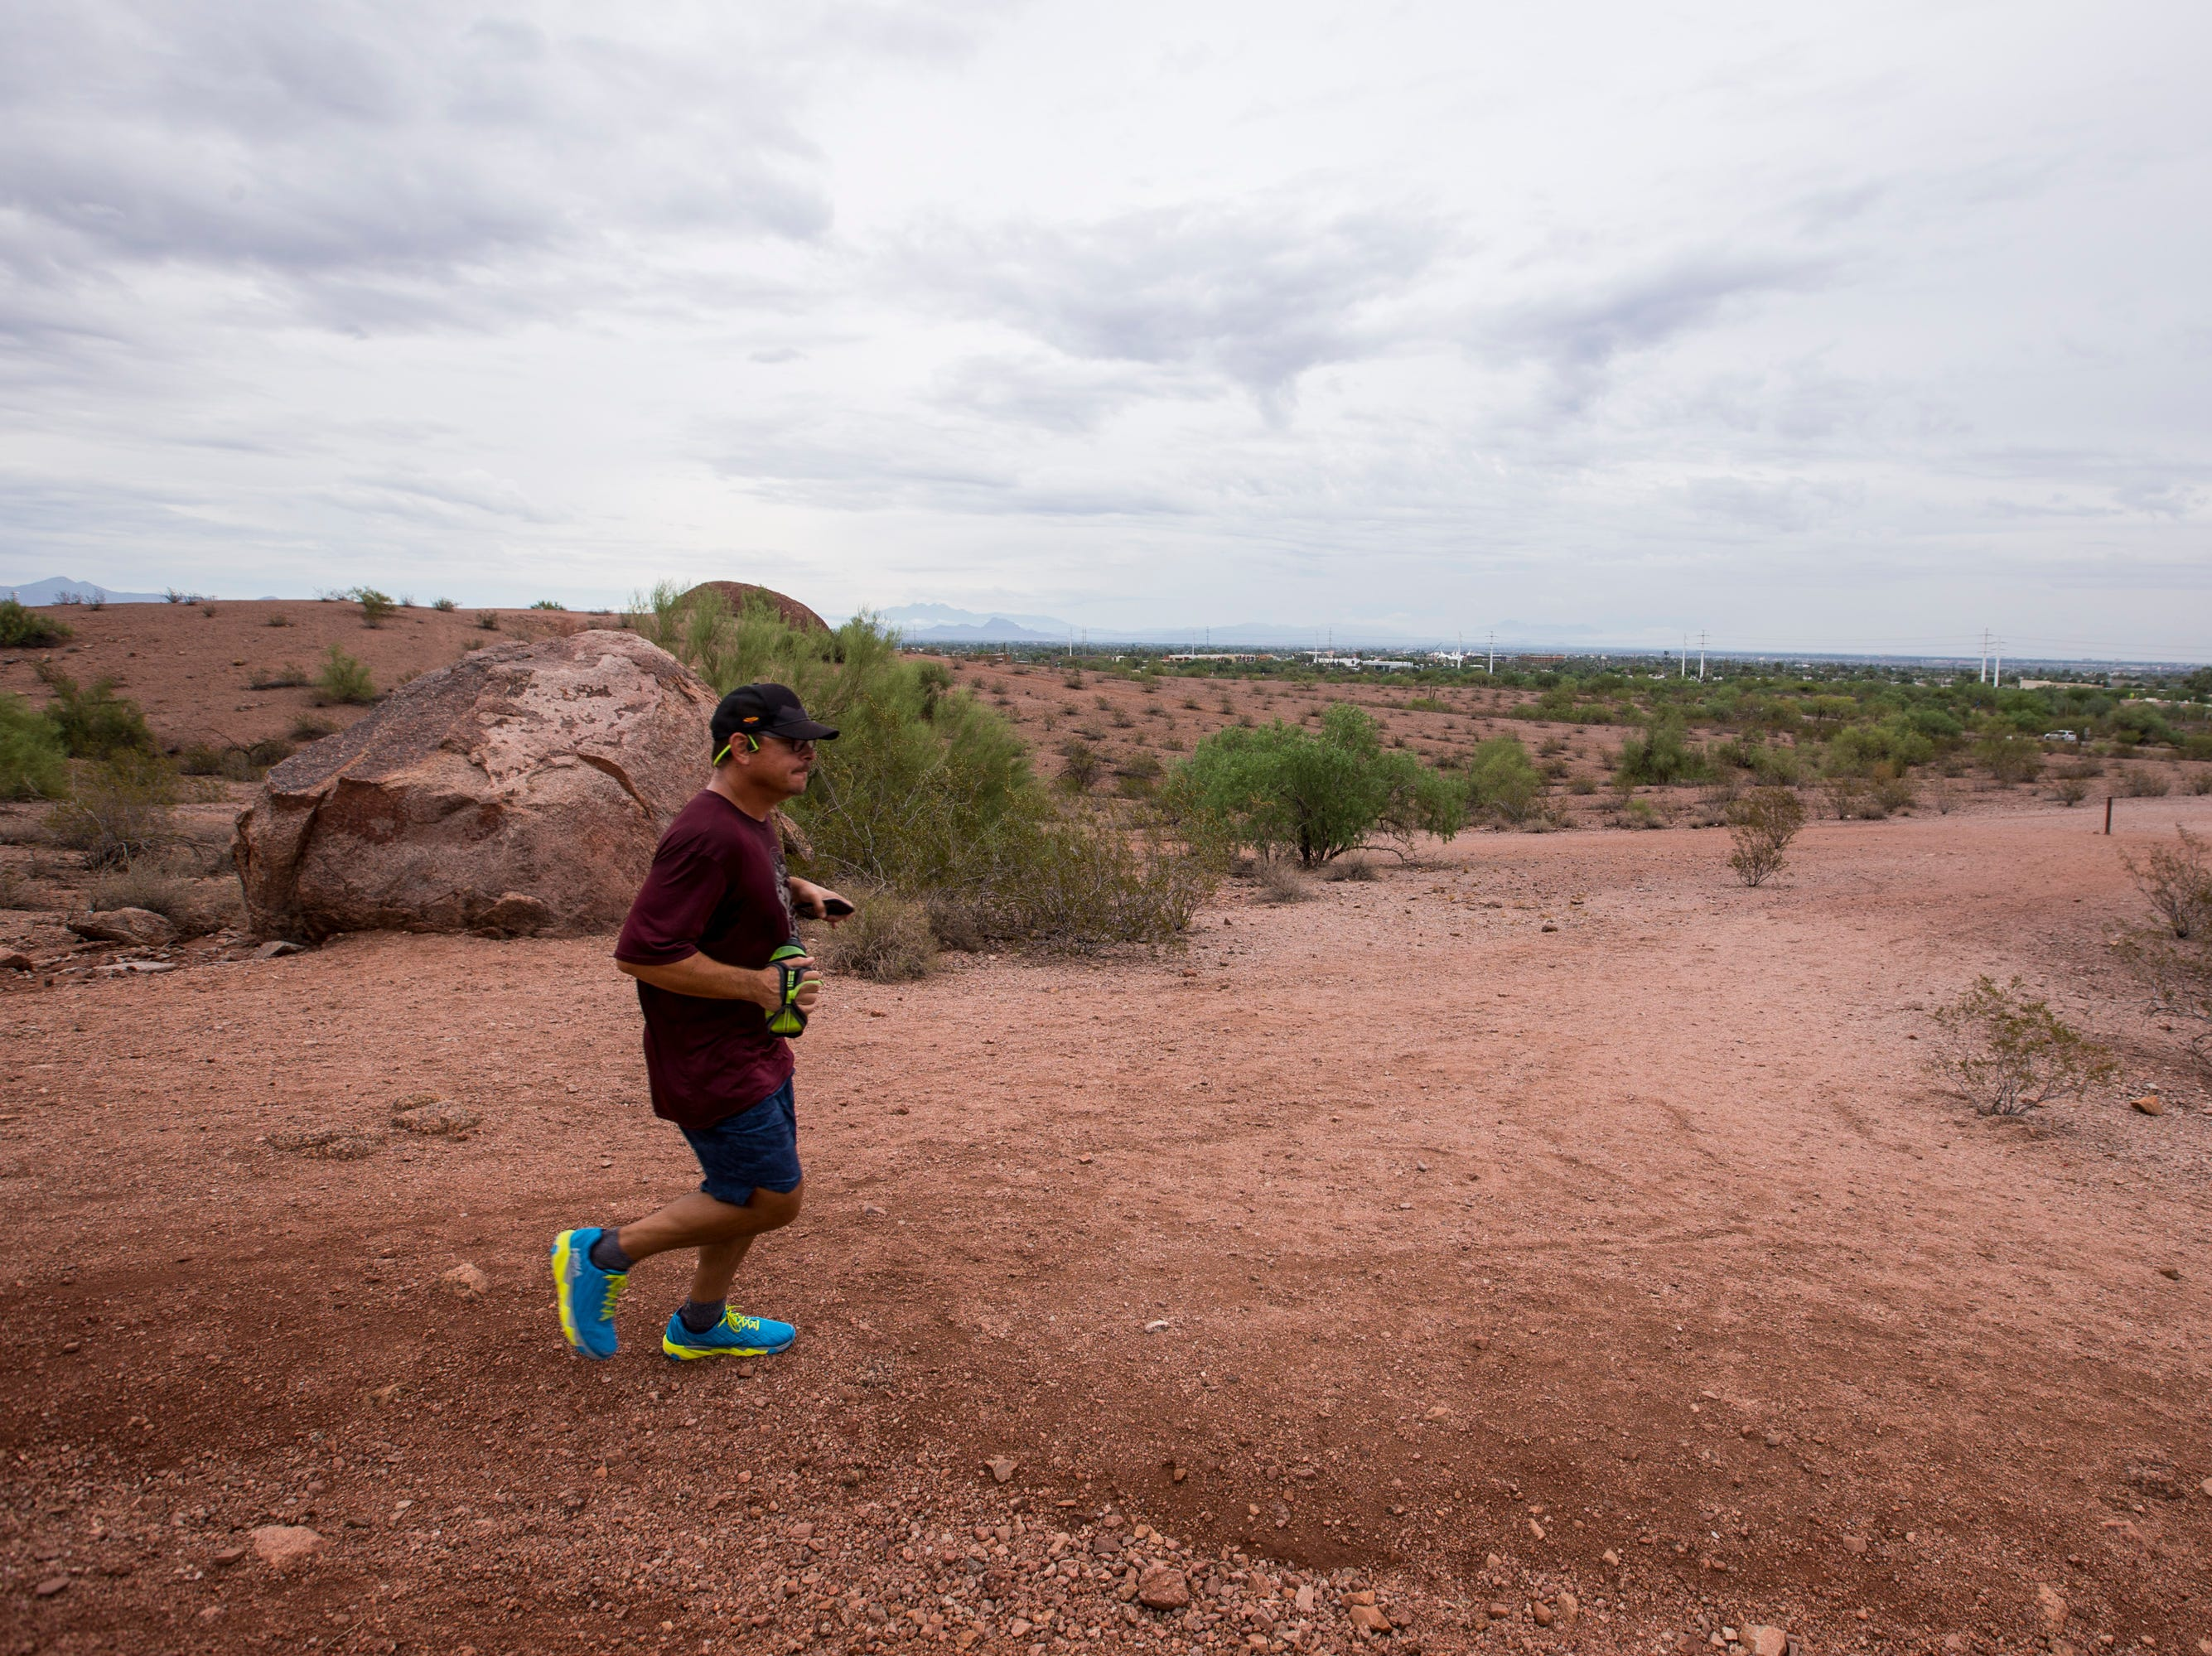 A man runs at Papago Park on Oct. 1, 2018, in Phoenix.